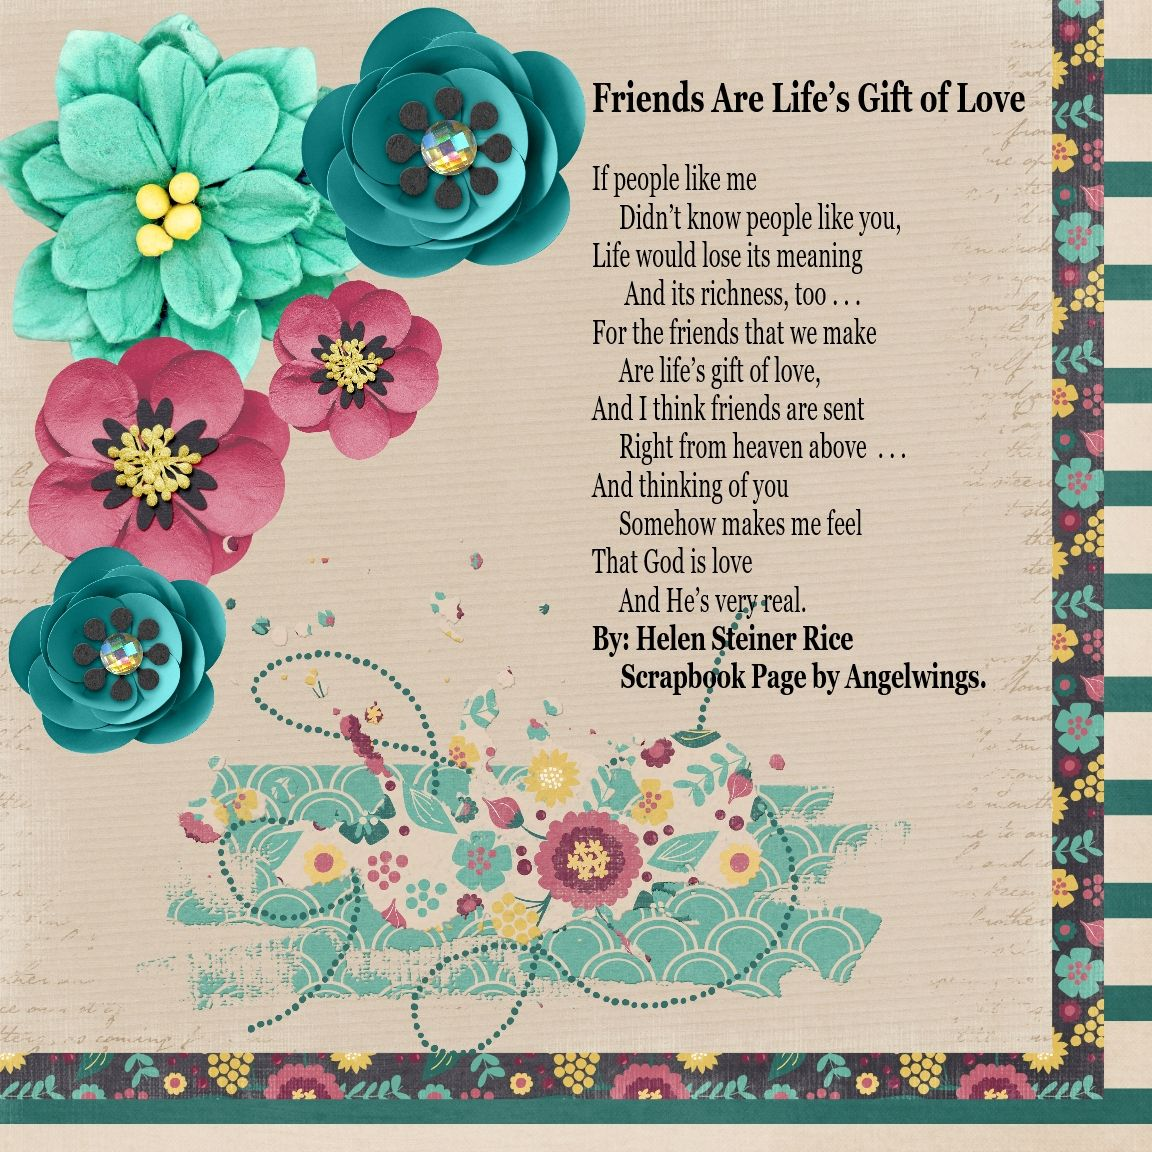 """Friends Are Life's Gift of Love"", by Helen Steiner Rice, Scrapbook Page by Angelwings."